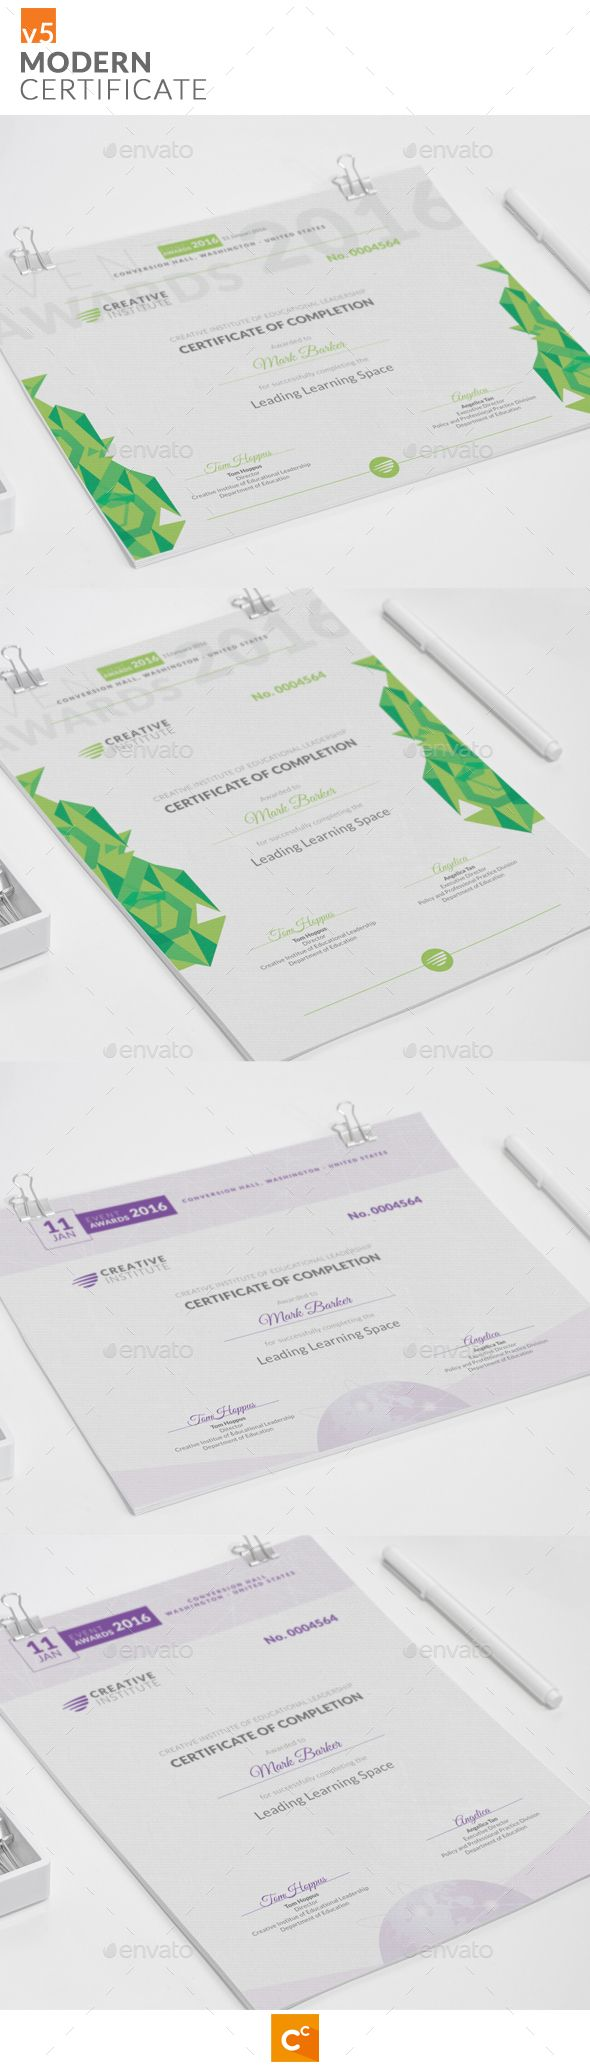 Best  Images On   Award Certificates